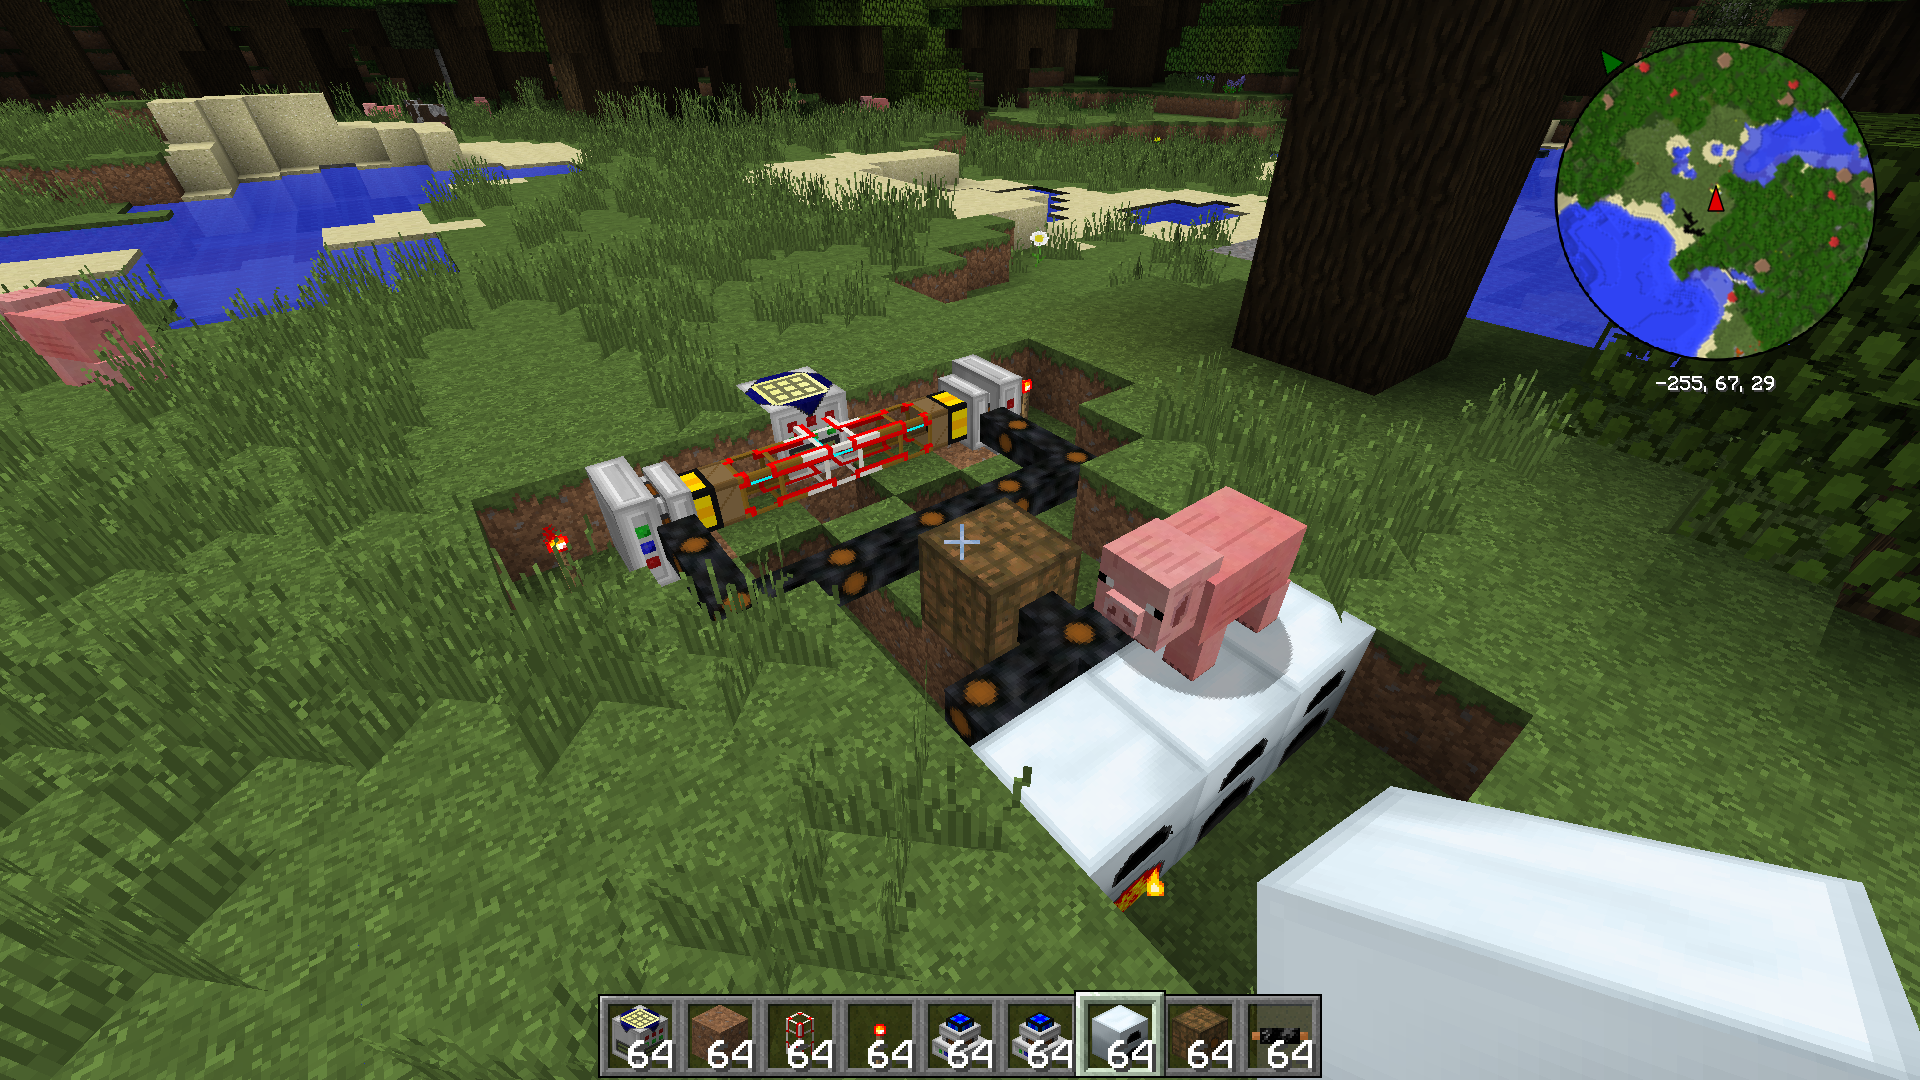 A pig sitting on top of my converter.